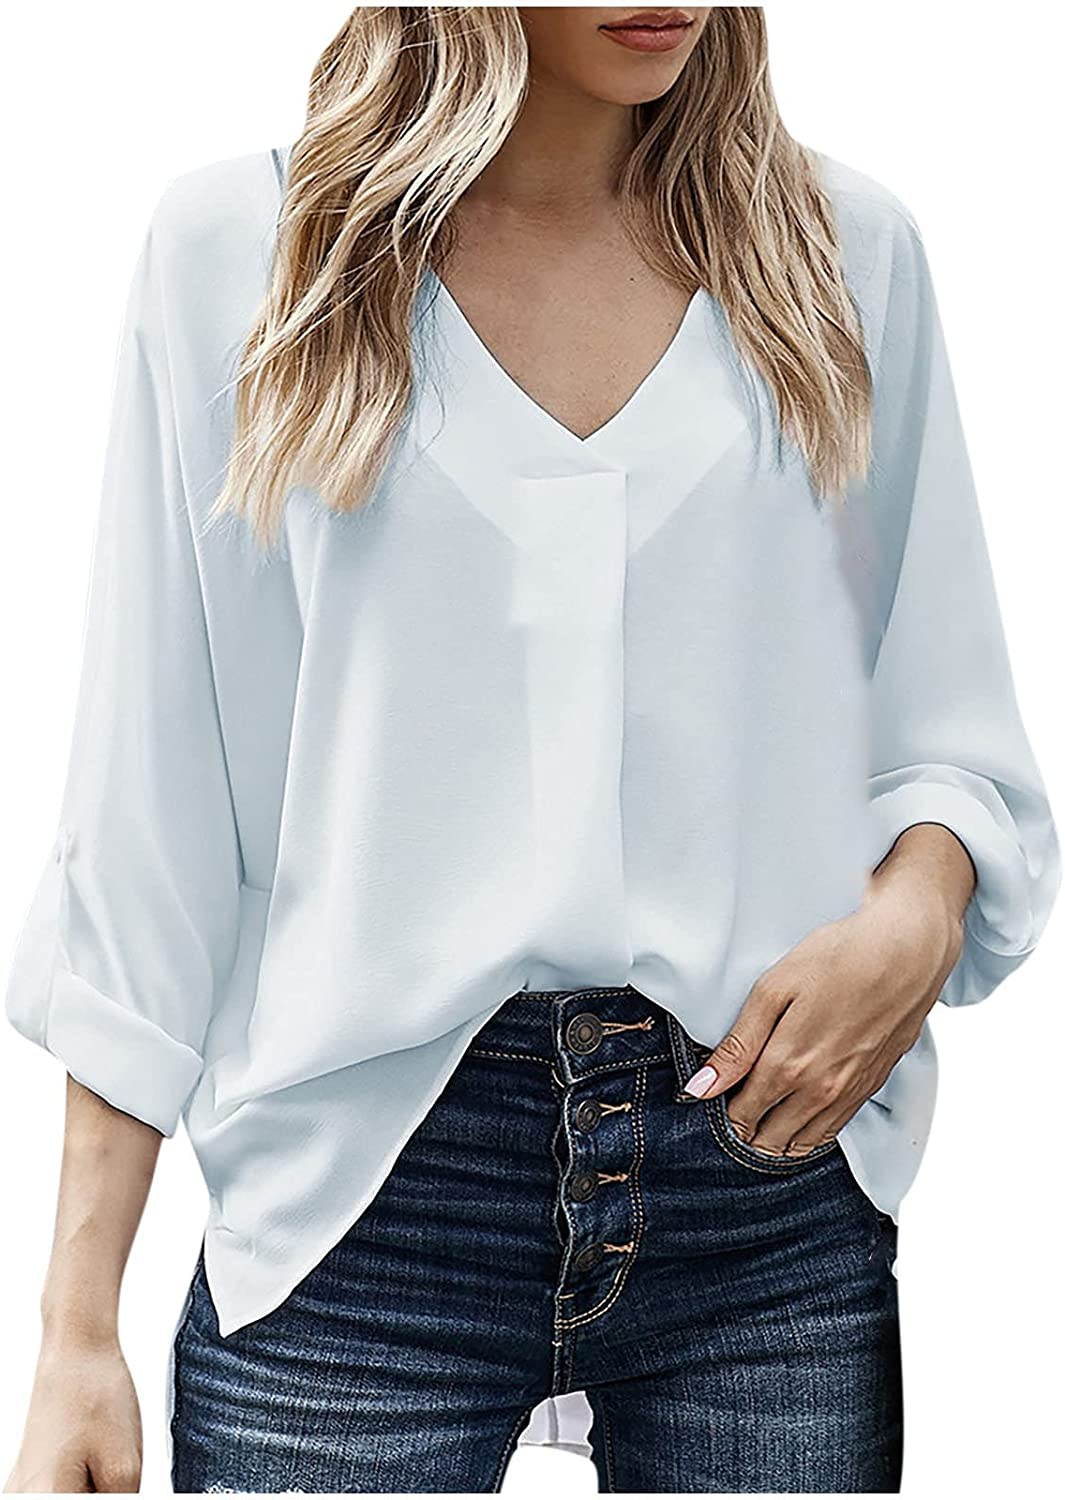 Womens Shirts V-Neck Solid Color Long Sleeve Simple Fashion Loose Breathable Comfy Blouses Ladies Office Daily Tops